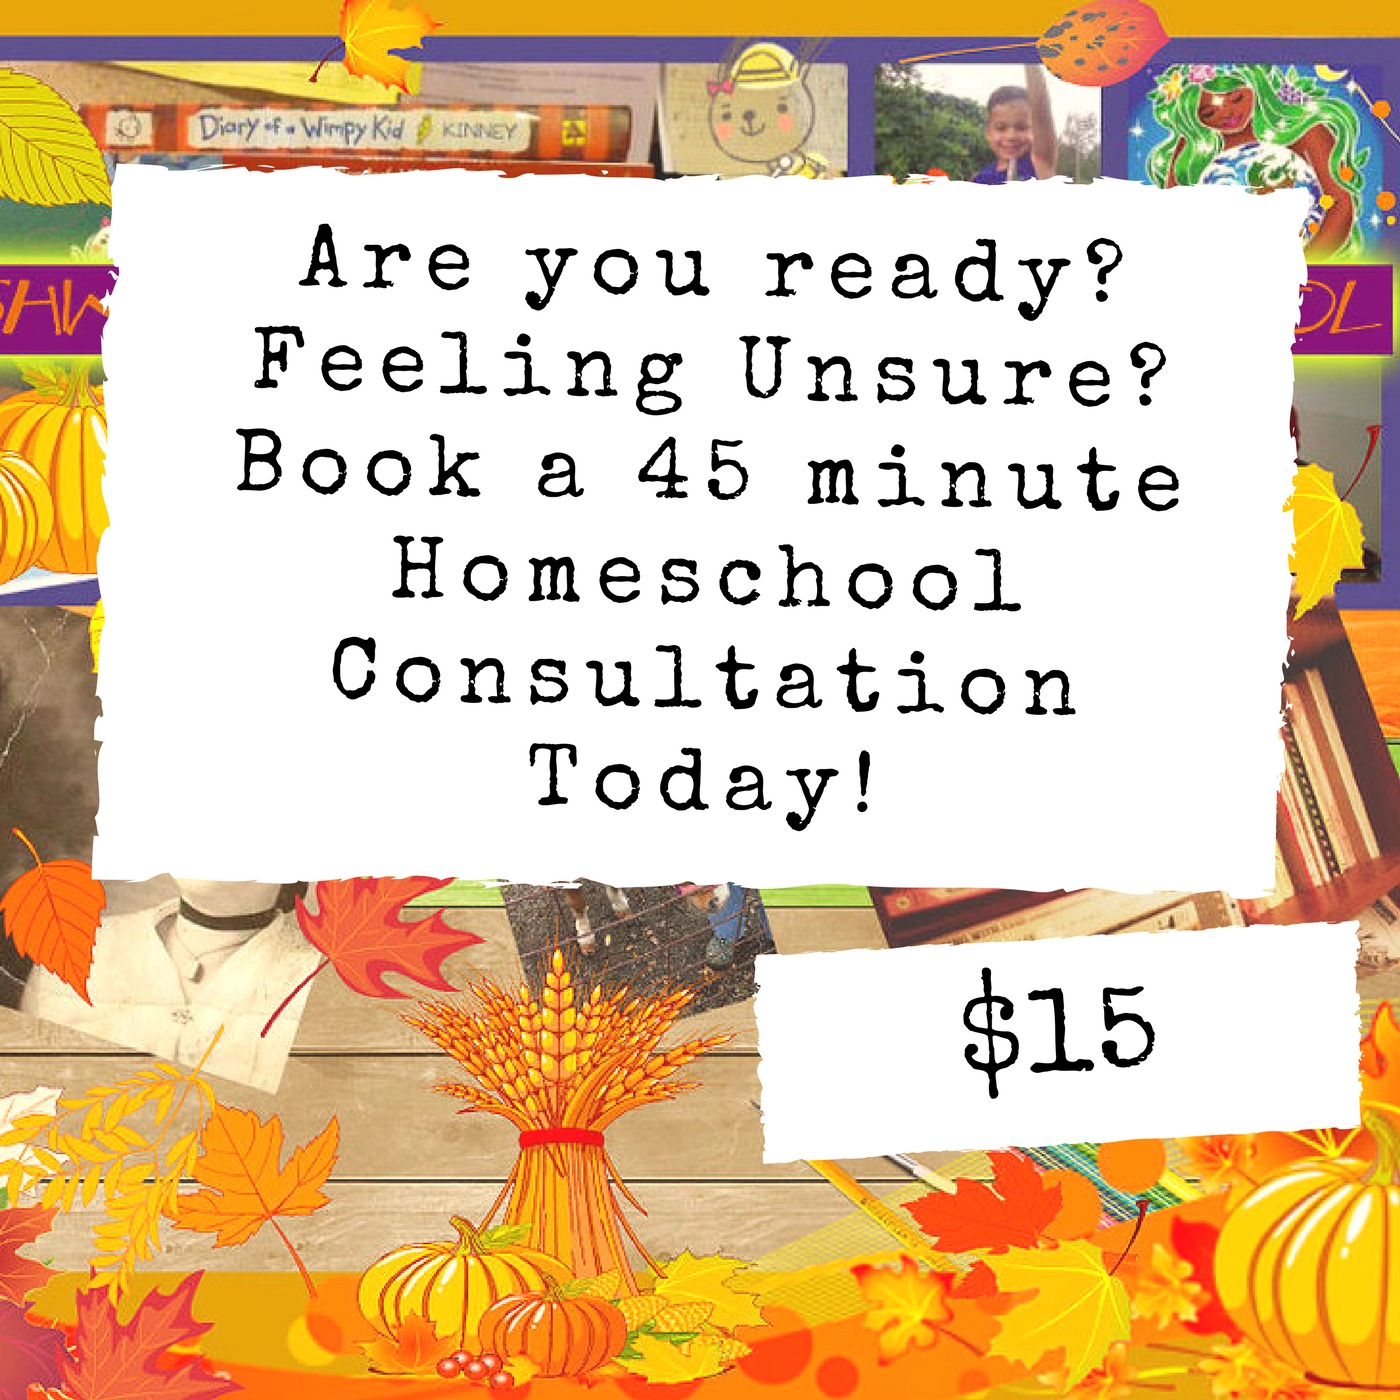 Homeschool Consultation $15